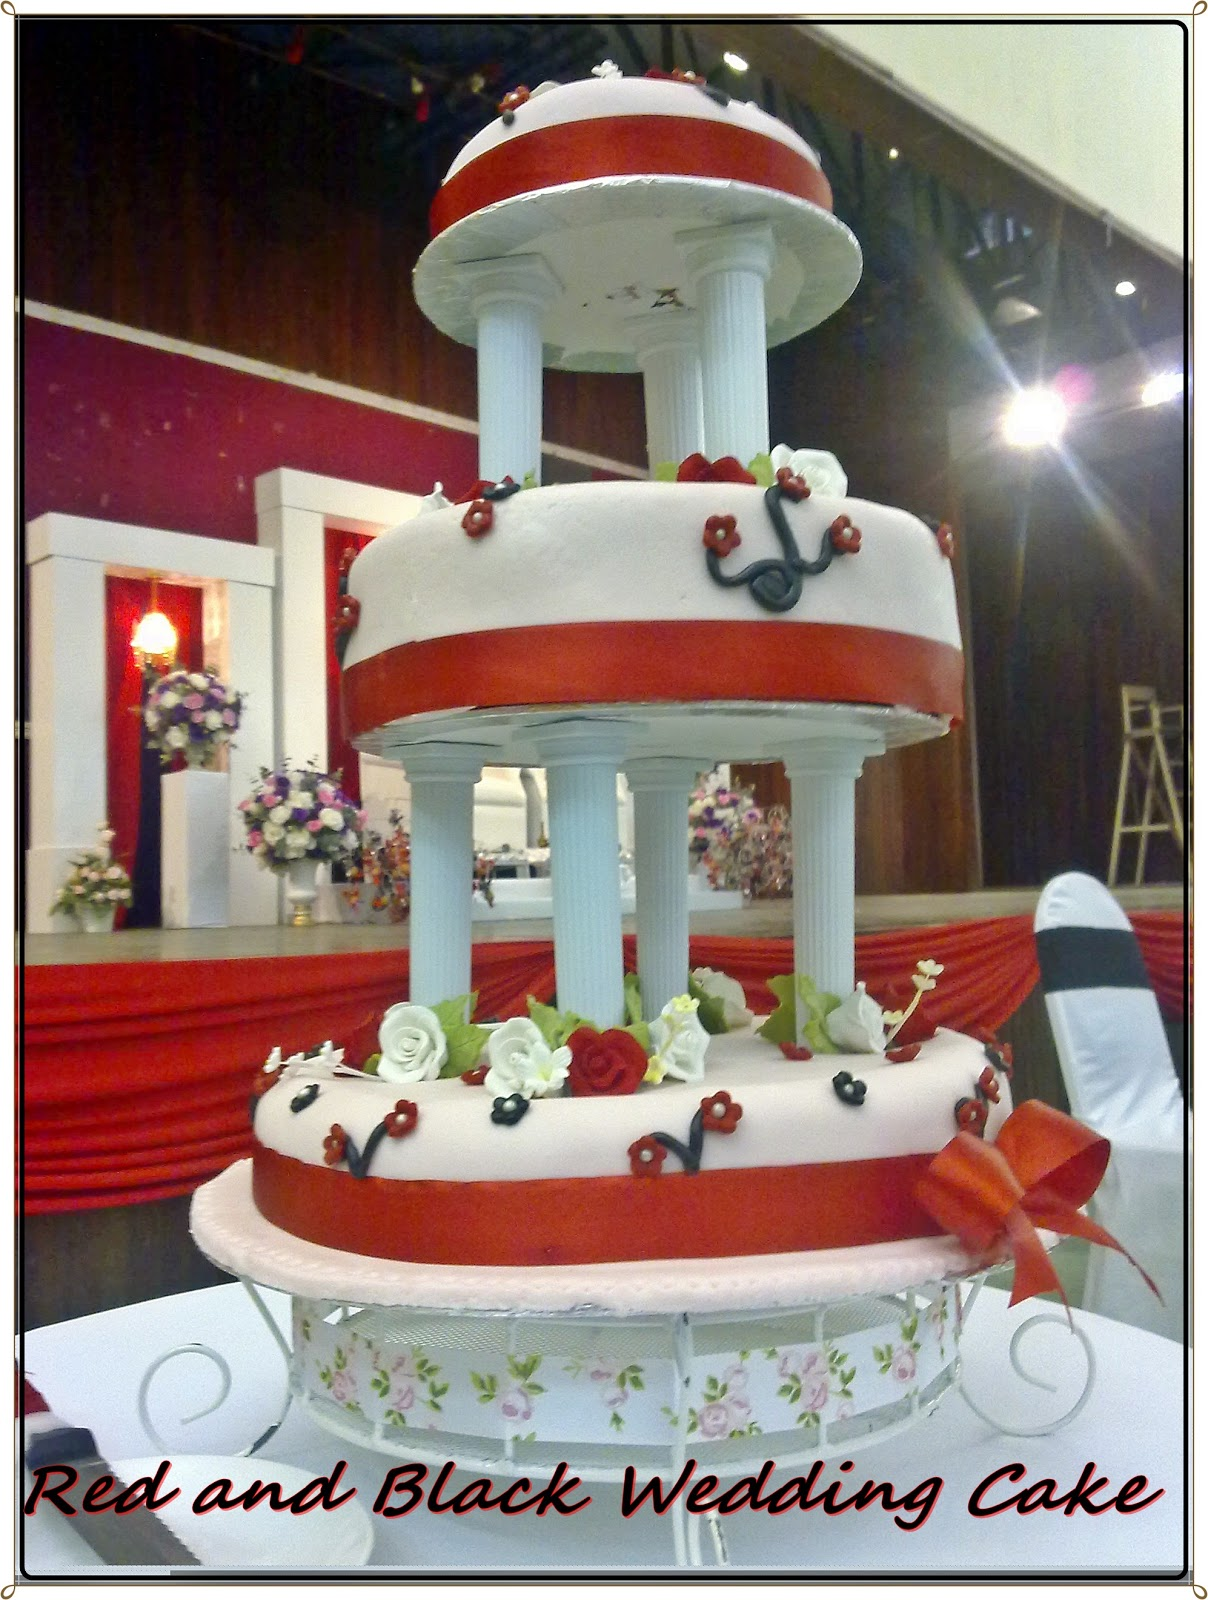 And Red Wedding Cake